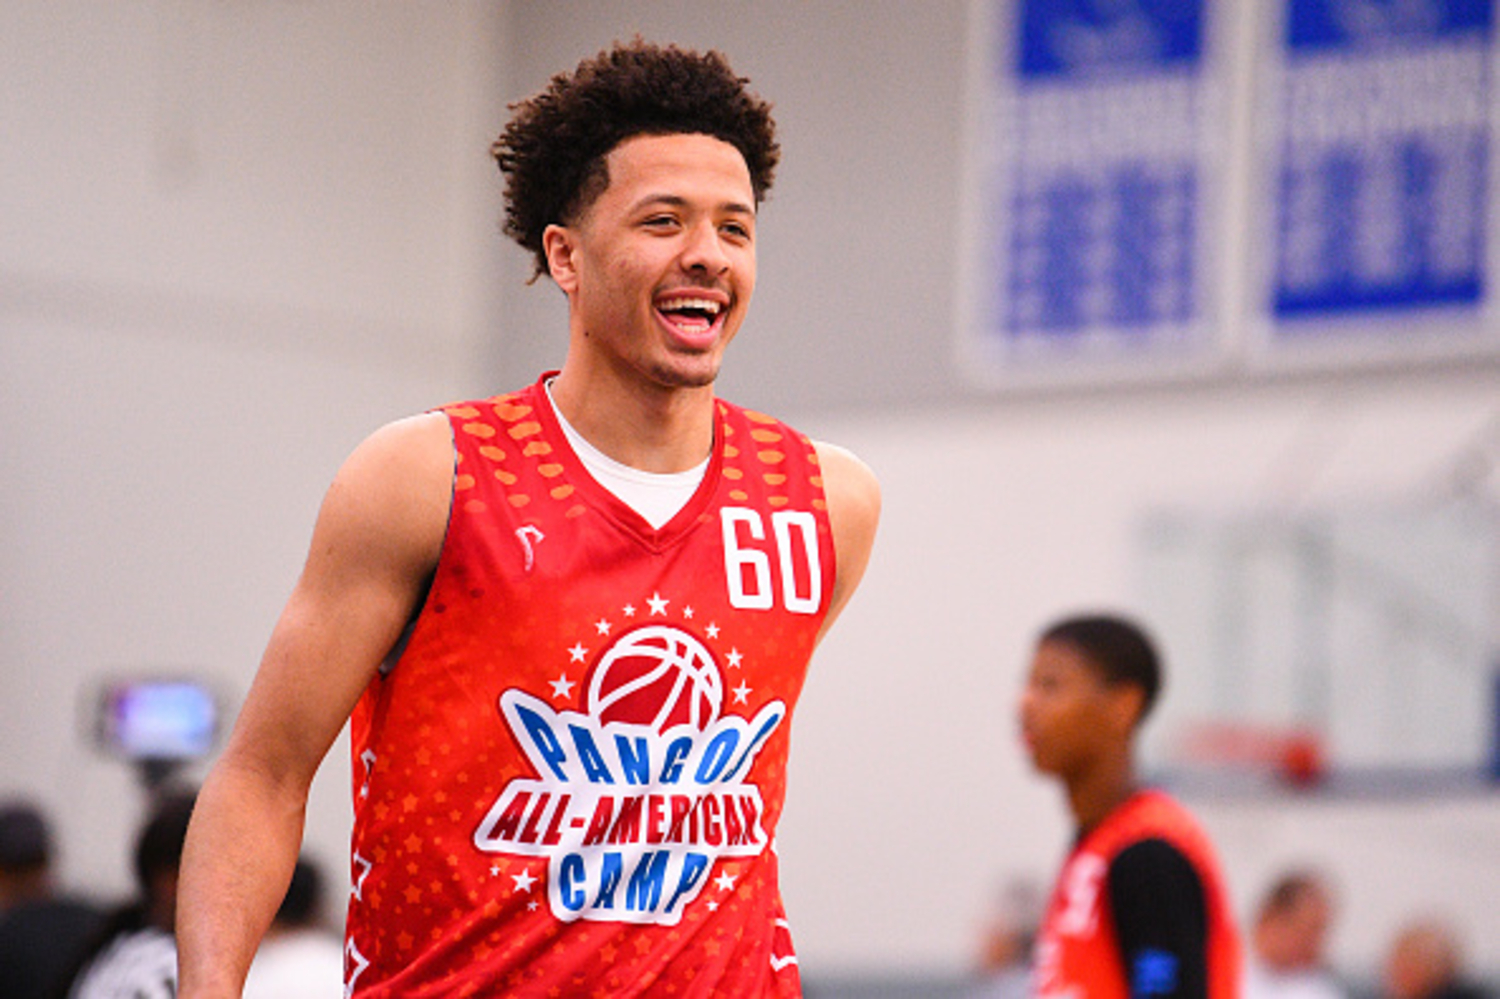 Cade Cunningham is Showing Why He's a Top NCAA Player and Potential No. 1 Draft Pick